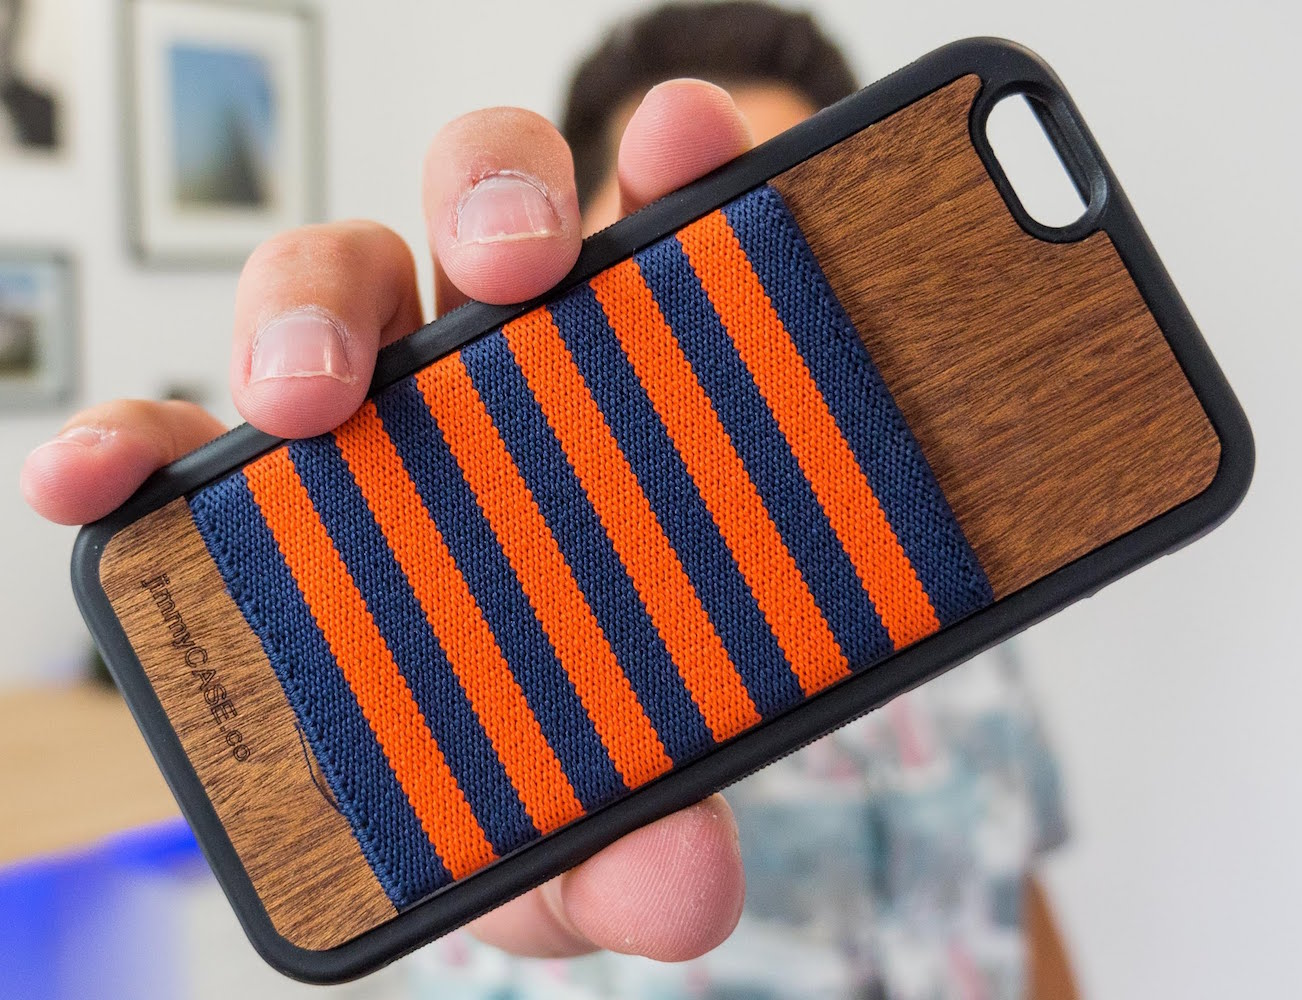 iPhone 6/S Wallet Case by jimmyCASE – With a Custom Woven Elastic Pocket